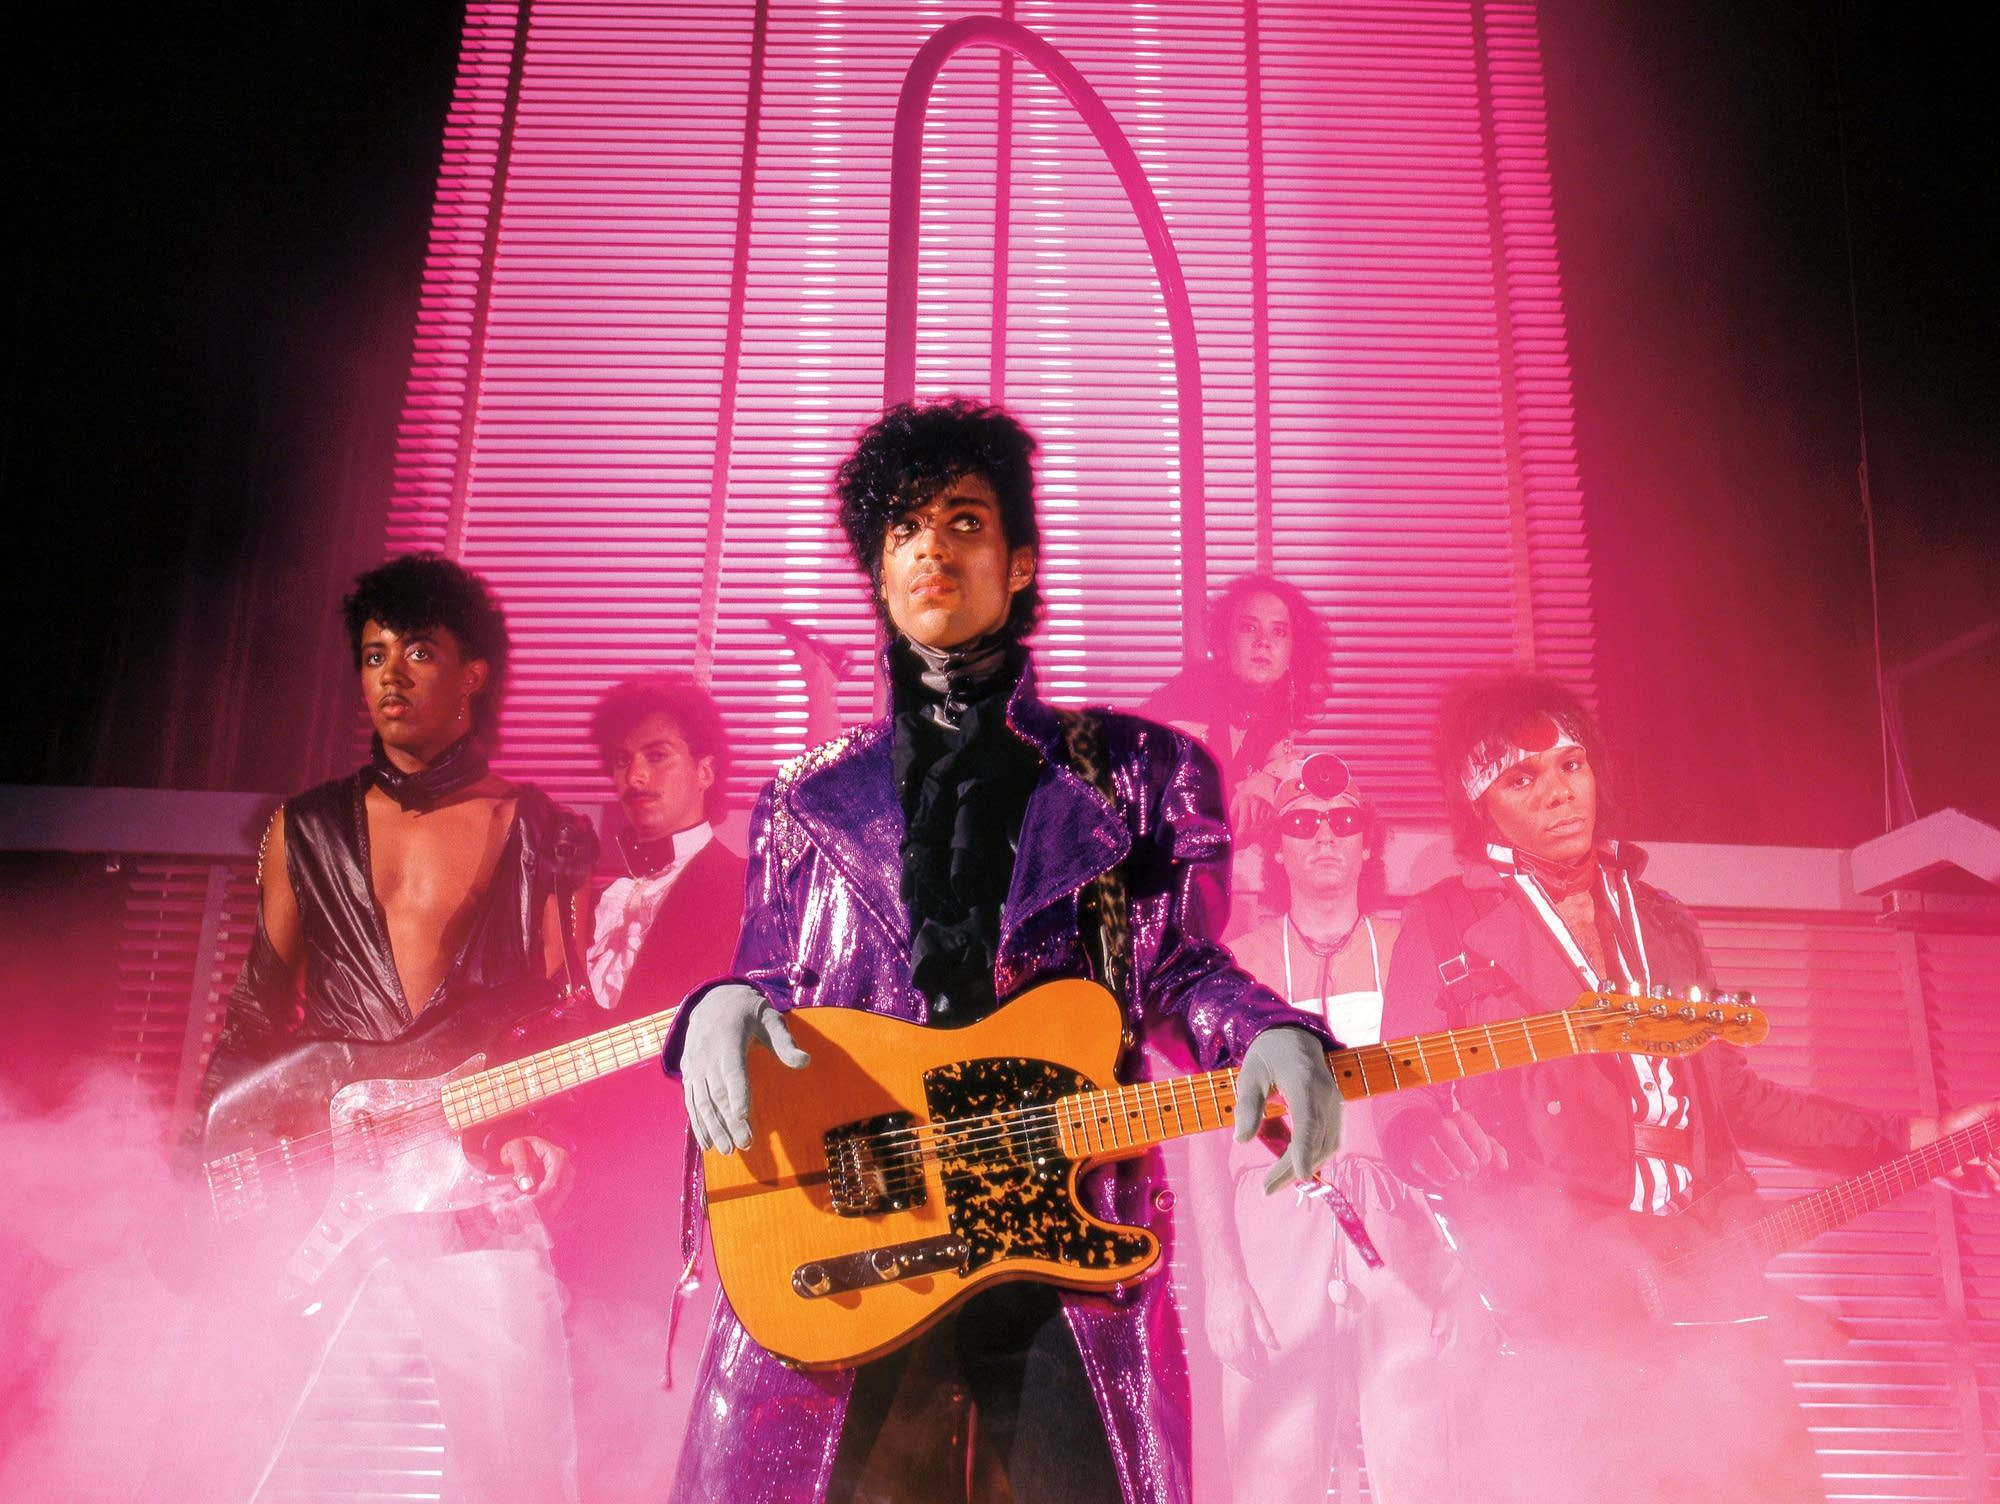 Prince and the Revolution promo photo